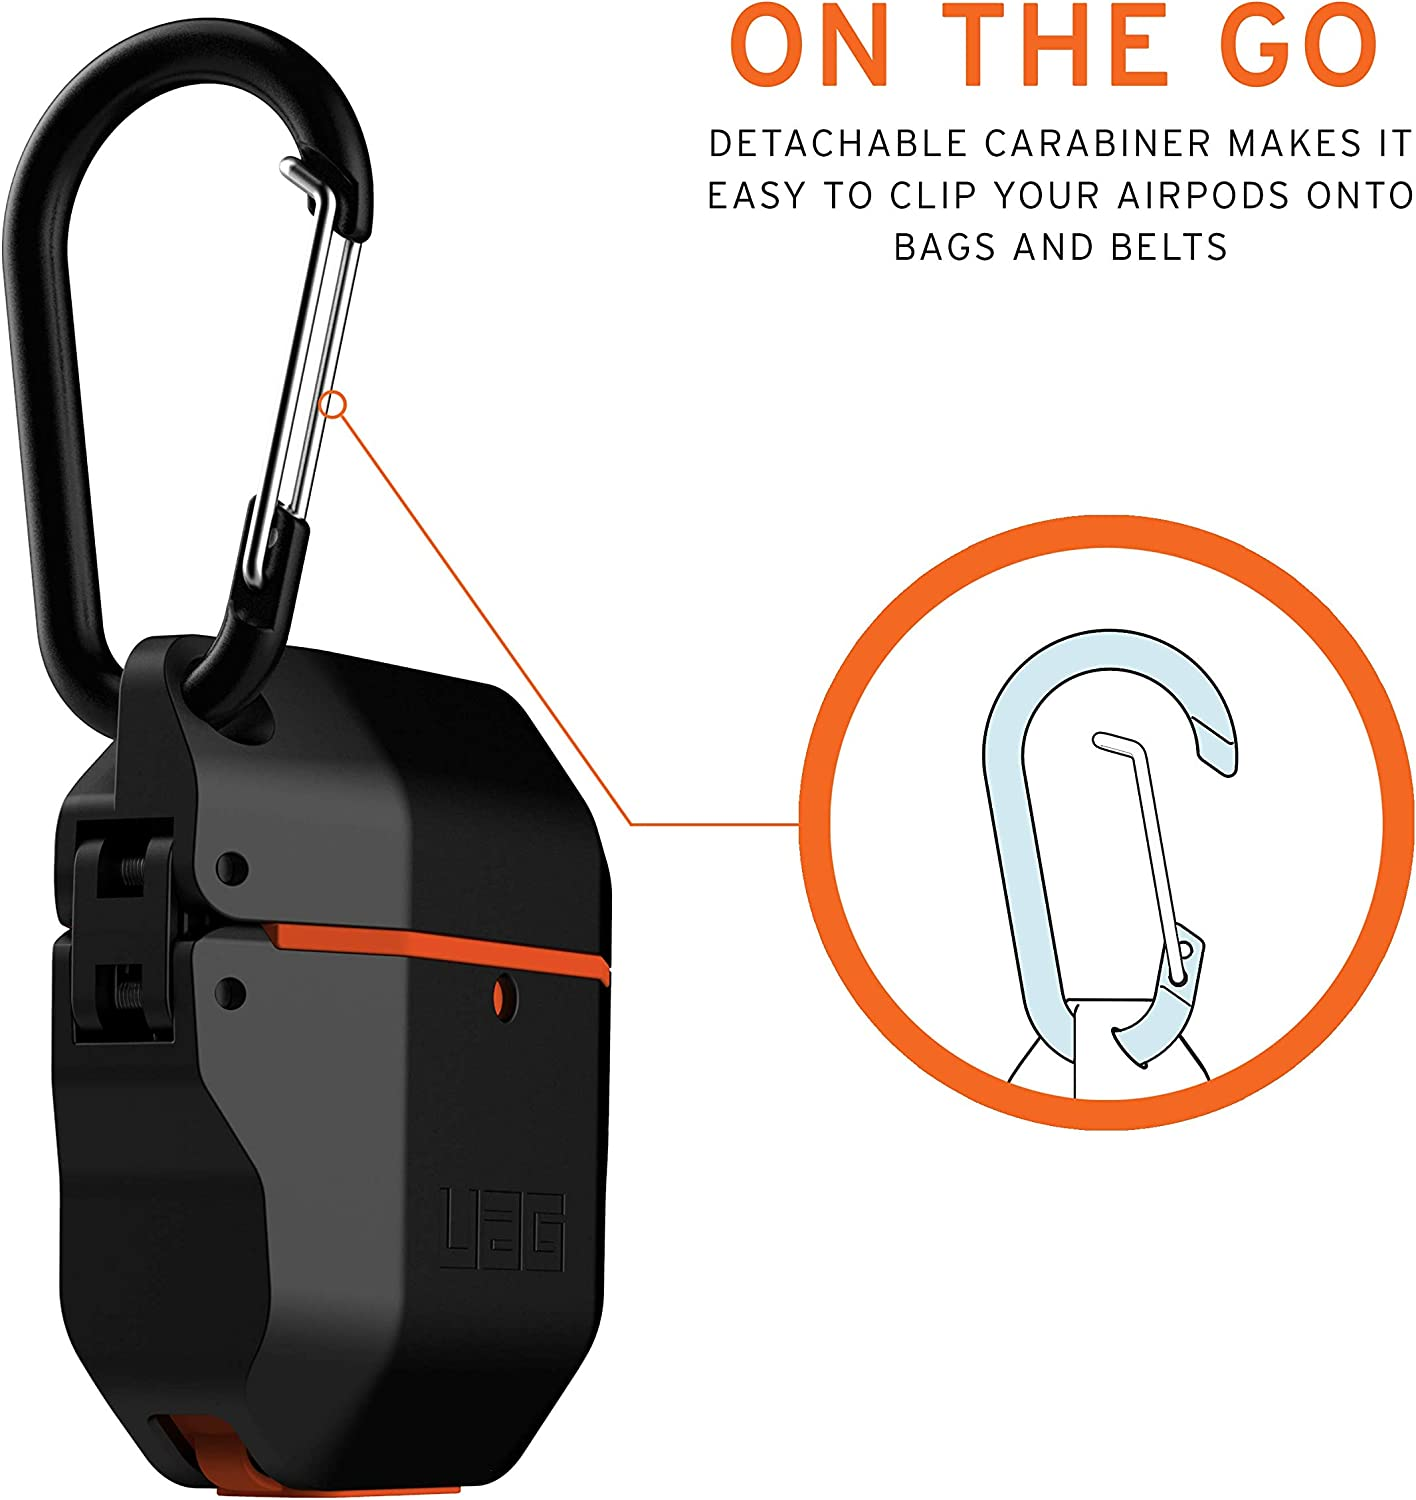 Full-Body Protective Rugged Water Resistant Soft-Touch Silicone Case with Detachable Carabiner URBAN ARMOR GEAR UAG Compatible with AirPods Pro Black//Black 10225K114040